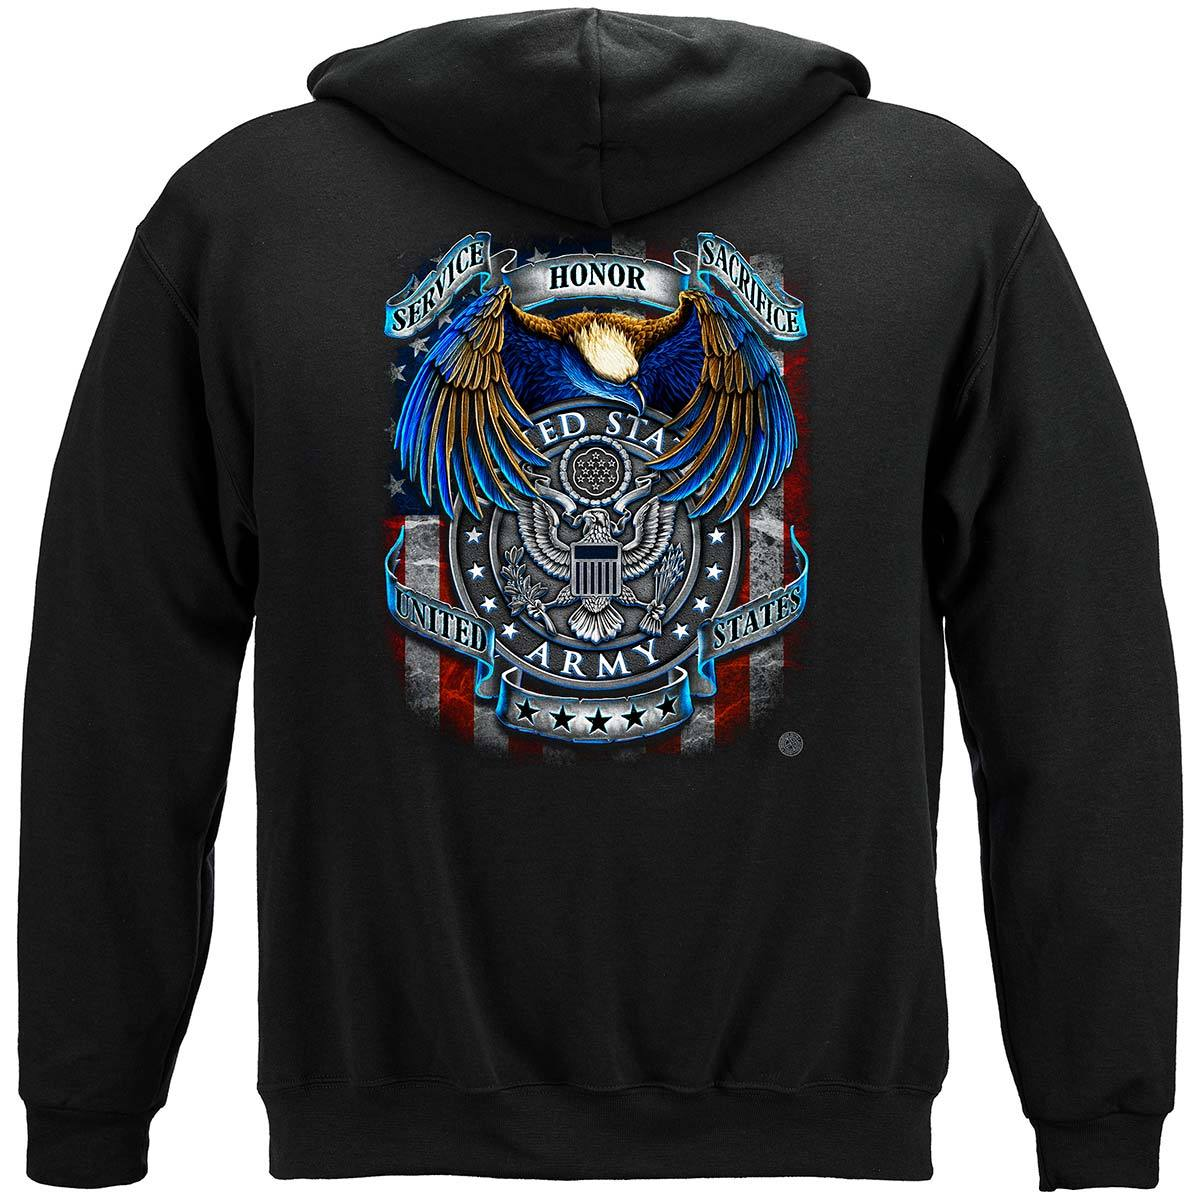 True Heroes Army Premium Hooded Sweat Shirt